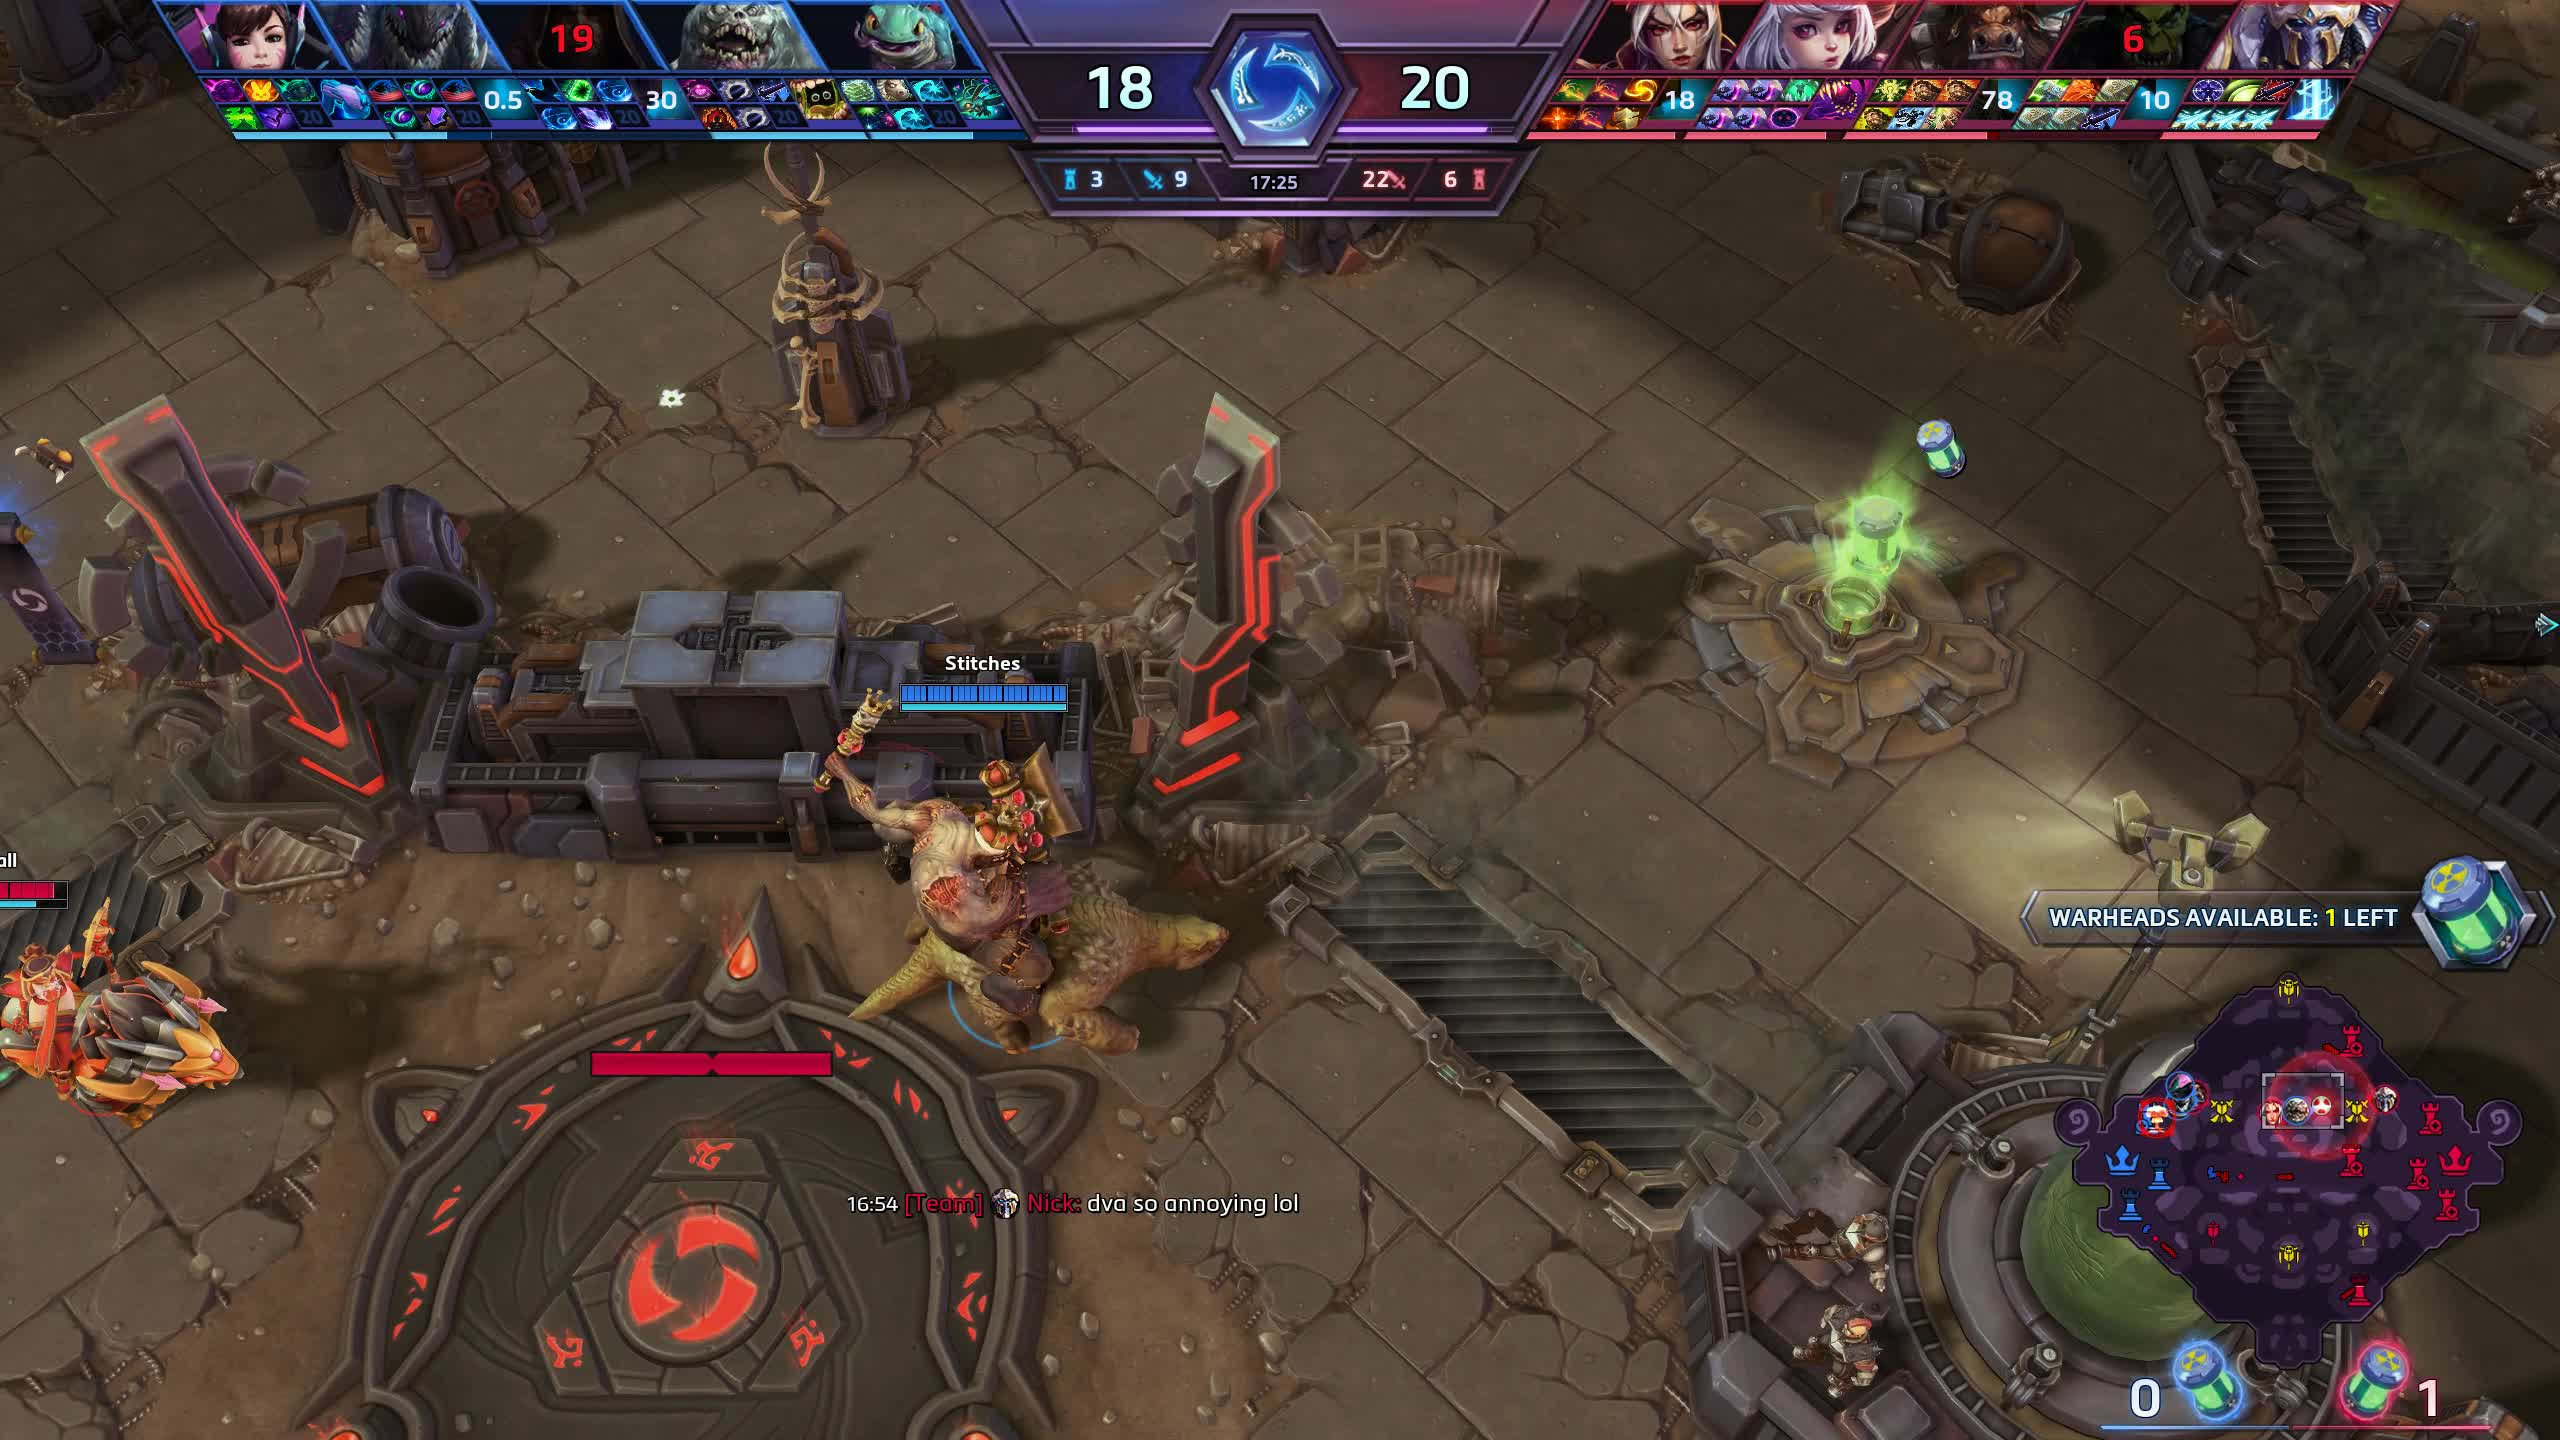 heroesofthestorm, Heroes of the Storm 2019.02.26 - 21.58.43.02 GIFs